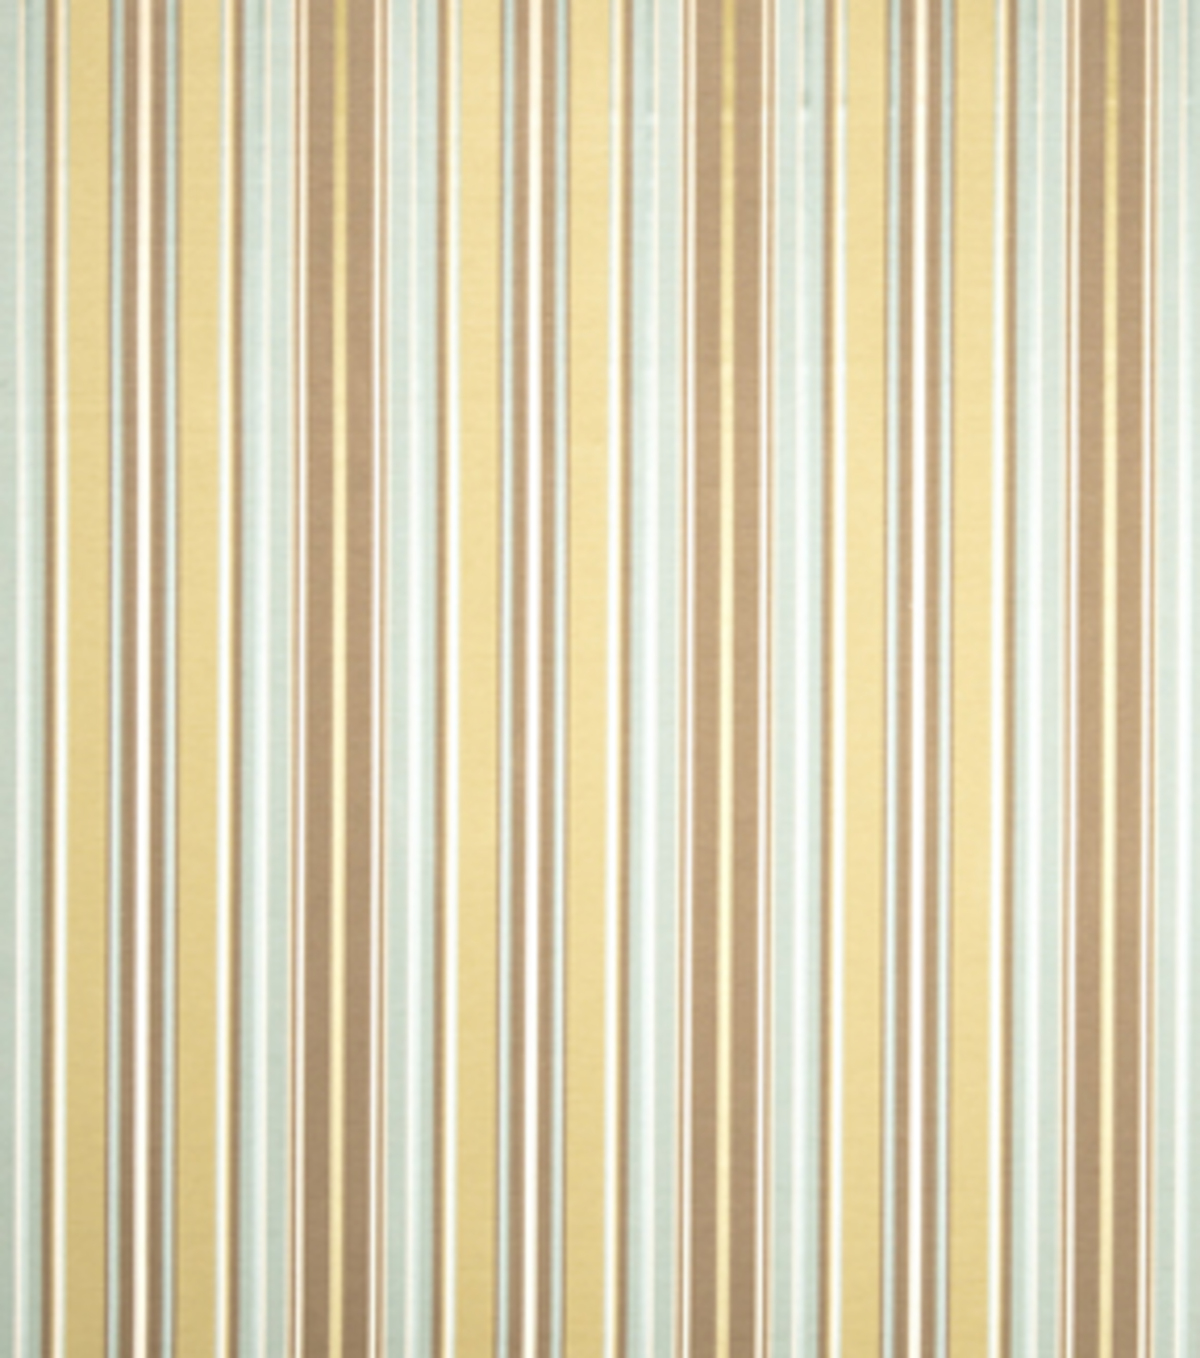 Home Decor 8\u0022x8\u0022 Fabric Swatch-SMC Designs Curious / Surfside